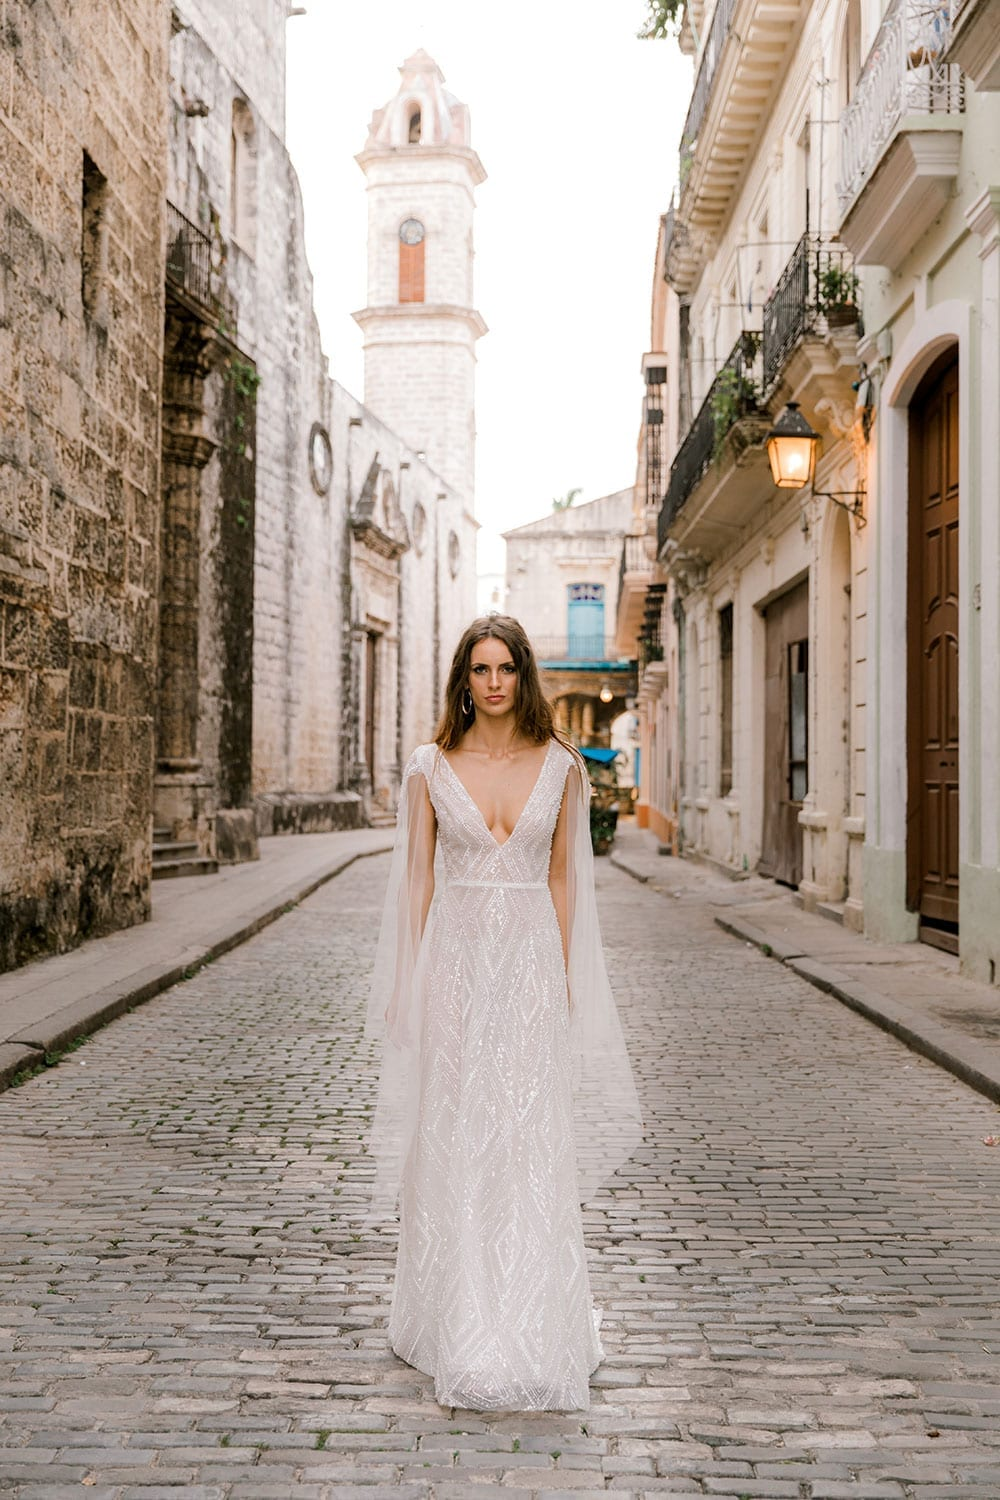 Model wearing Vinka Design Valentina Wedding dress with Deep V-Neck Beaded A-Line Gown on a cobbled Cuban street with high buildings either side